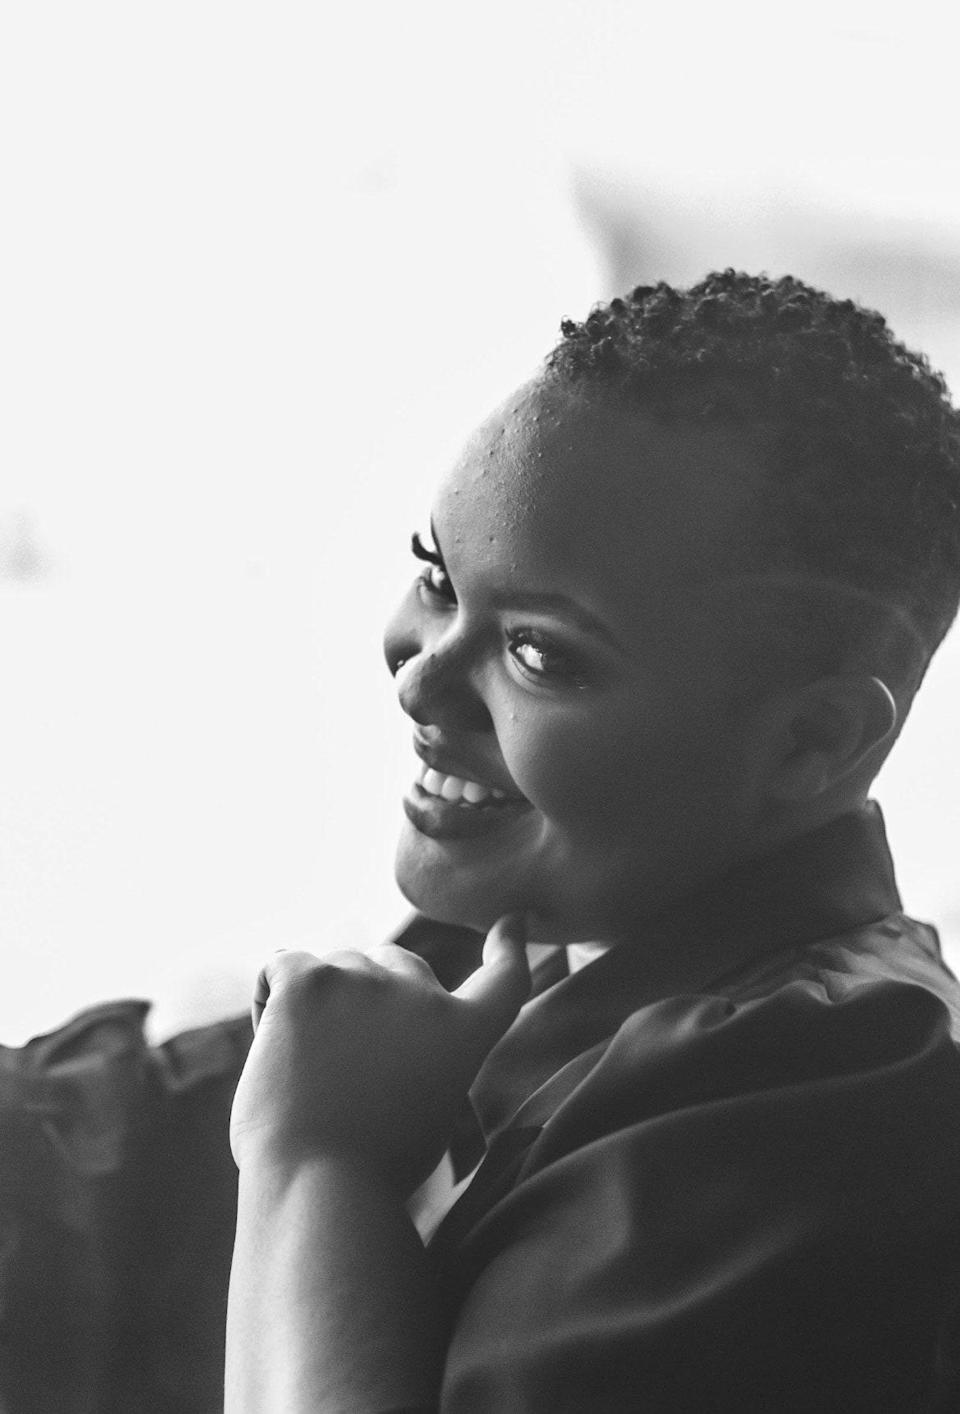 """Lily Njoroge, founder of Skin Wins. """"Textured skin, even as a licensed professional, is 100% normal,"""" she says. """"It's crucial to me to normalize all skin conditions and not view them as something that always needs correction or revision, in real life and also in images."""""""